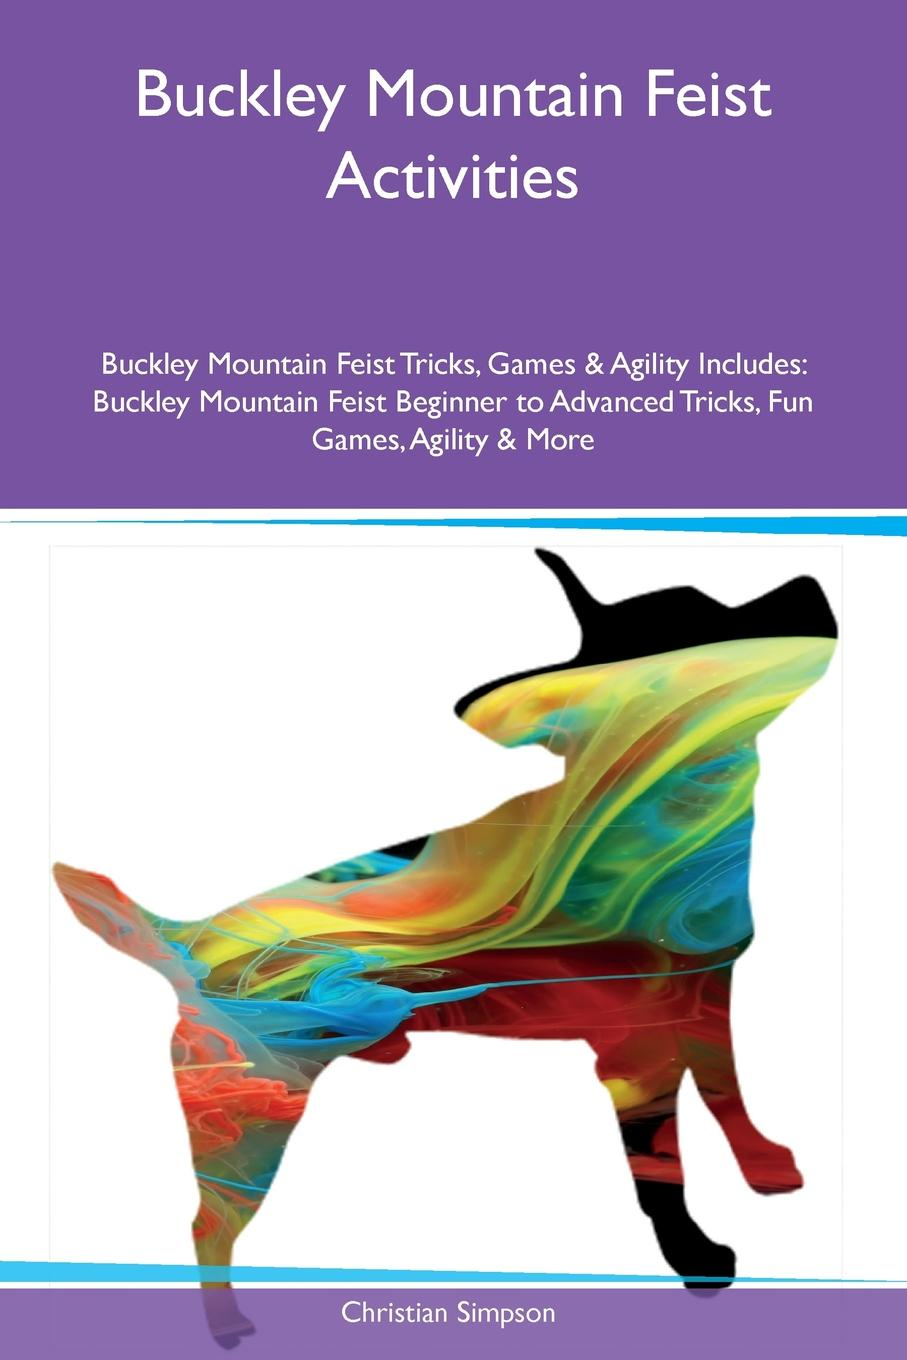 Christian Simpson Buckley Mountain Feist Activities Buckley Mountain Feist Tricks, Games & Agility Includes. Buckley Mountain Feist Beginner to Advanced Tricks, Fun Games, Agility & More training central mountain feist tricks training mountain feist tricks